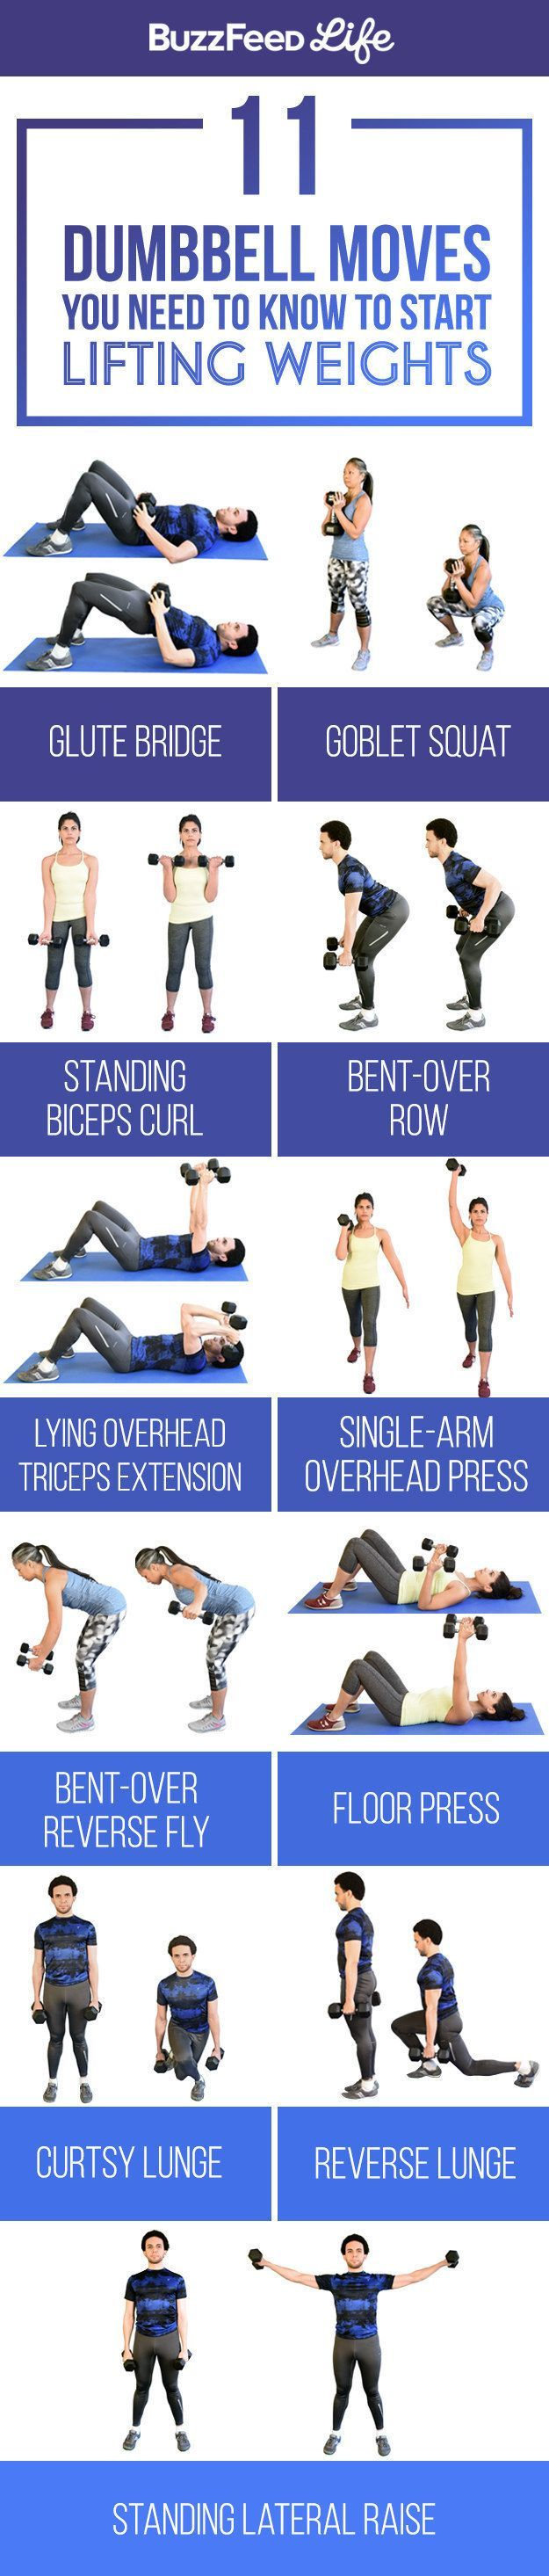 Invest in a kettlebell or set of dumbbells so you can always lift at home. | Posted By: CustomWeightLossProgram.com